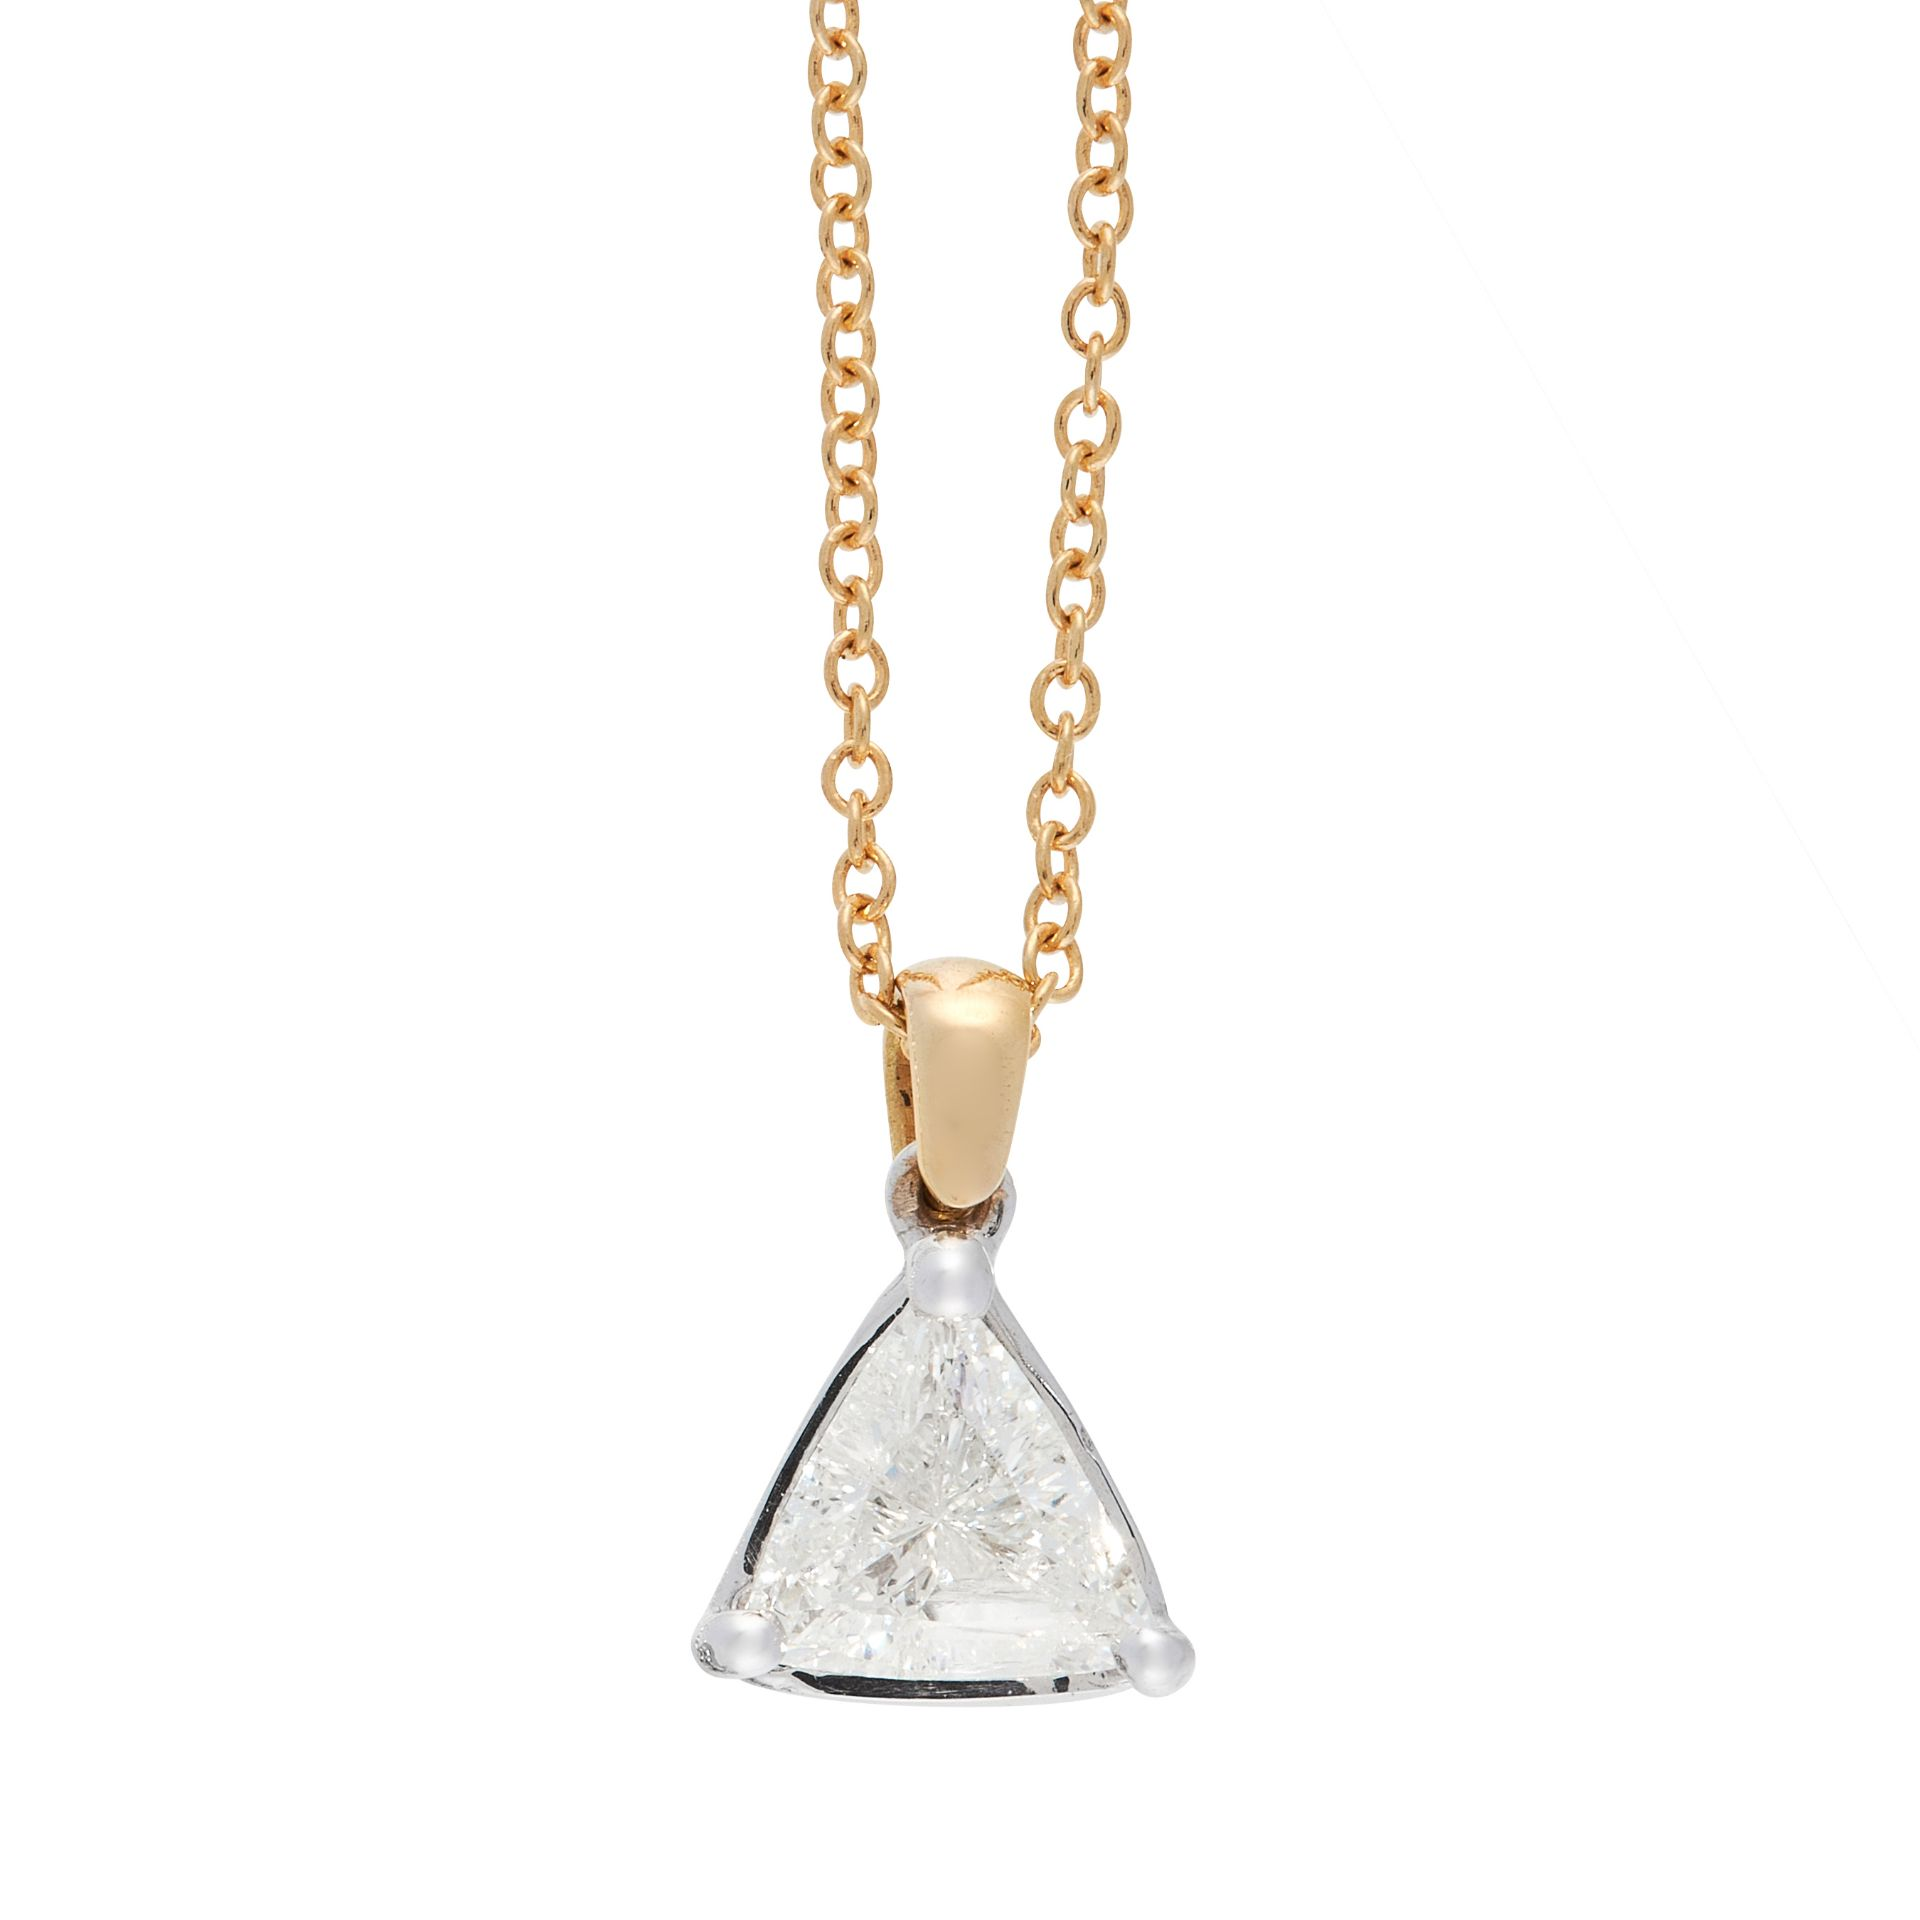 A DIAMOND PENDANT AND CHAIN in 18ct gold, set with a trillion cut diamond of 0.95 carats, stamped